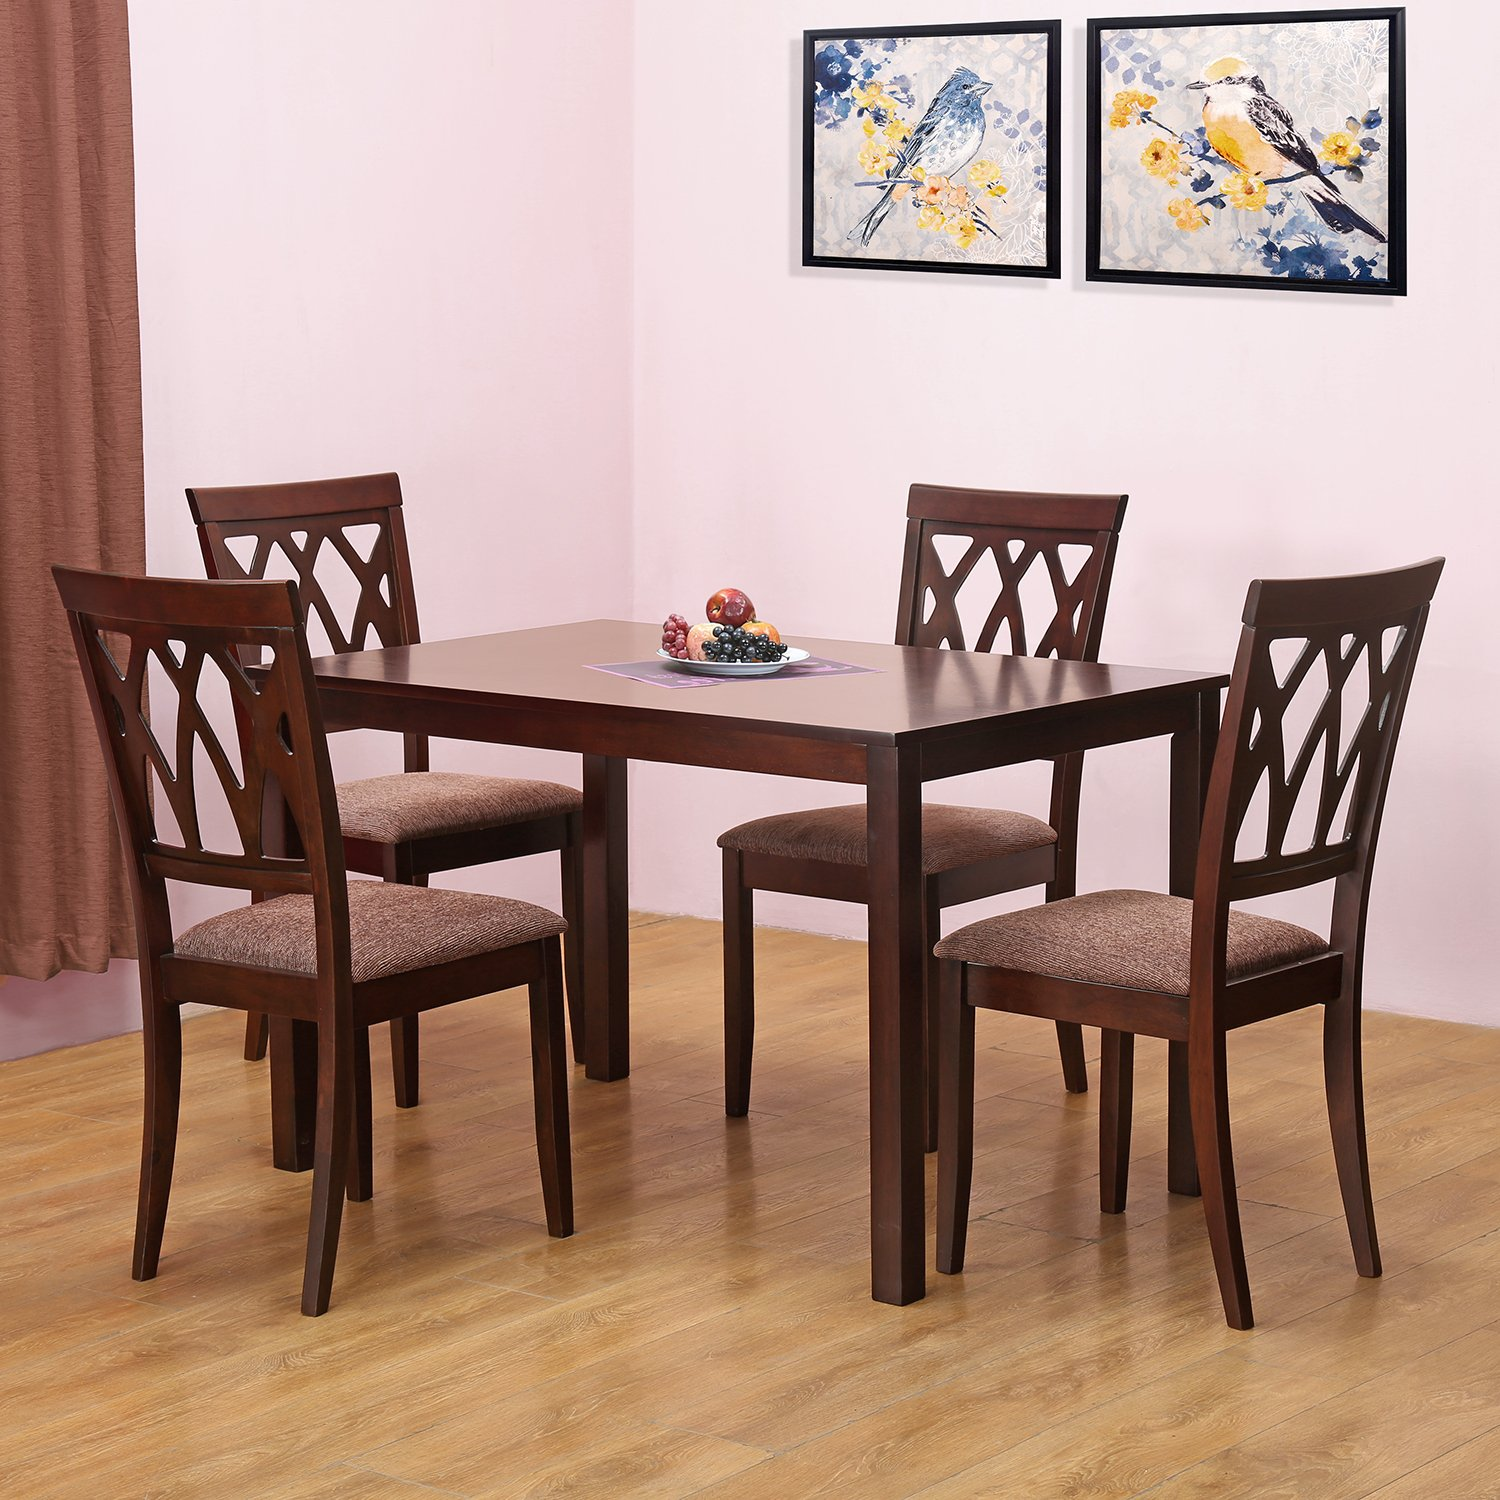 4 Chairs In Dining Room: @home By Nilkamal Peak Four Seater Dining Table Set (Beige